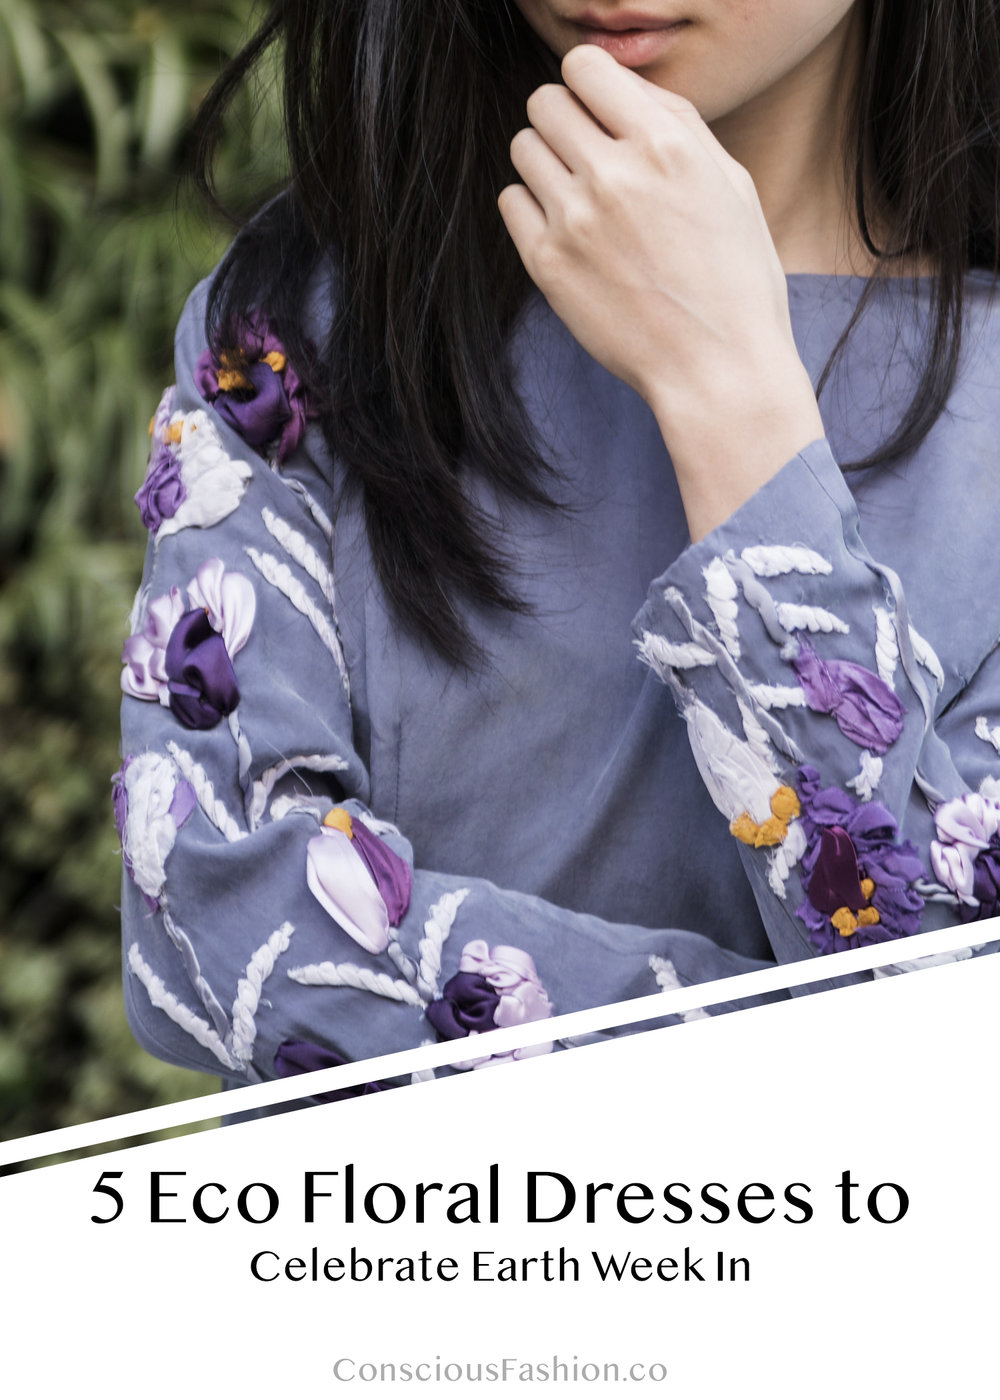 Eco Fashion Brands Floral Dresses by Conscious Fashion Collective